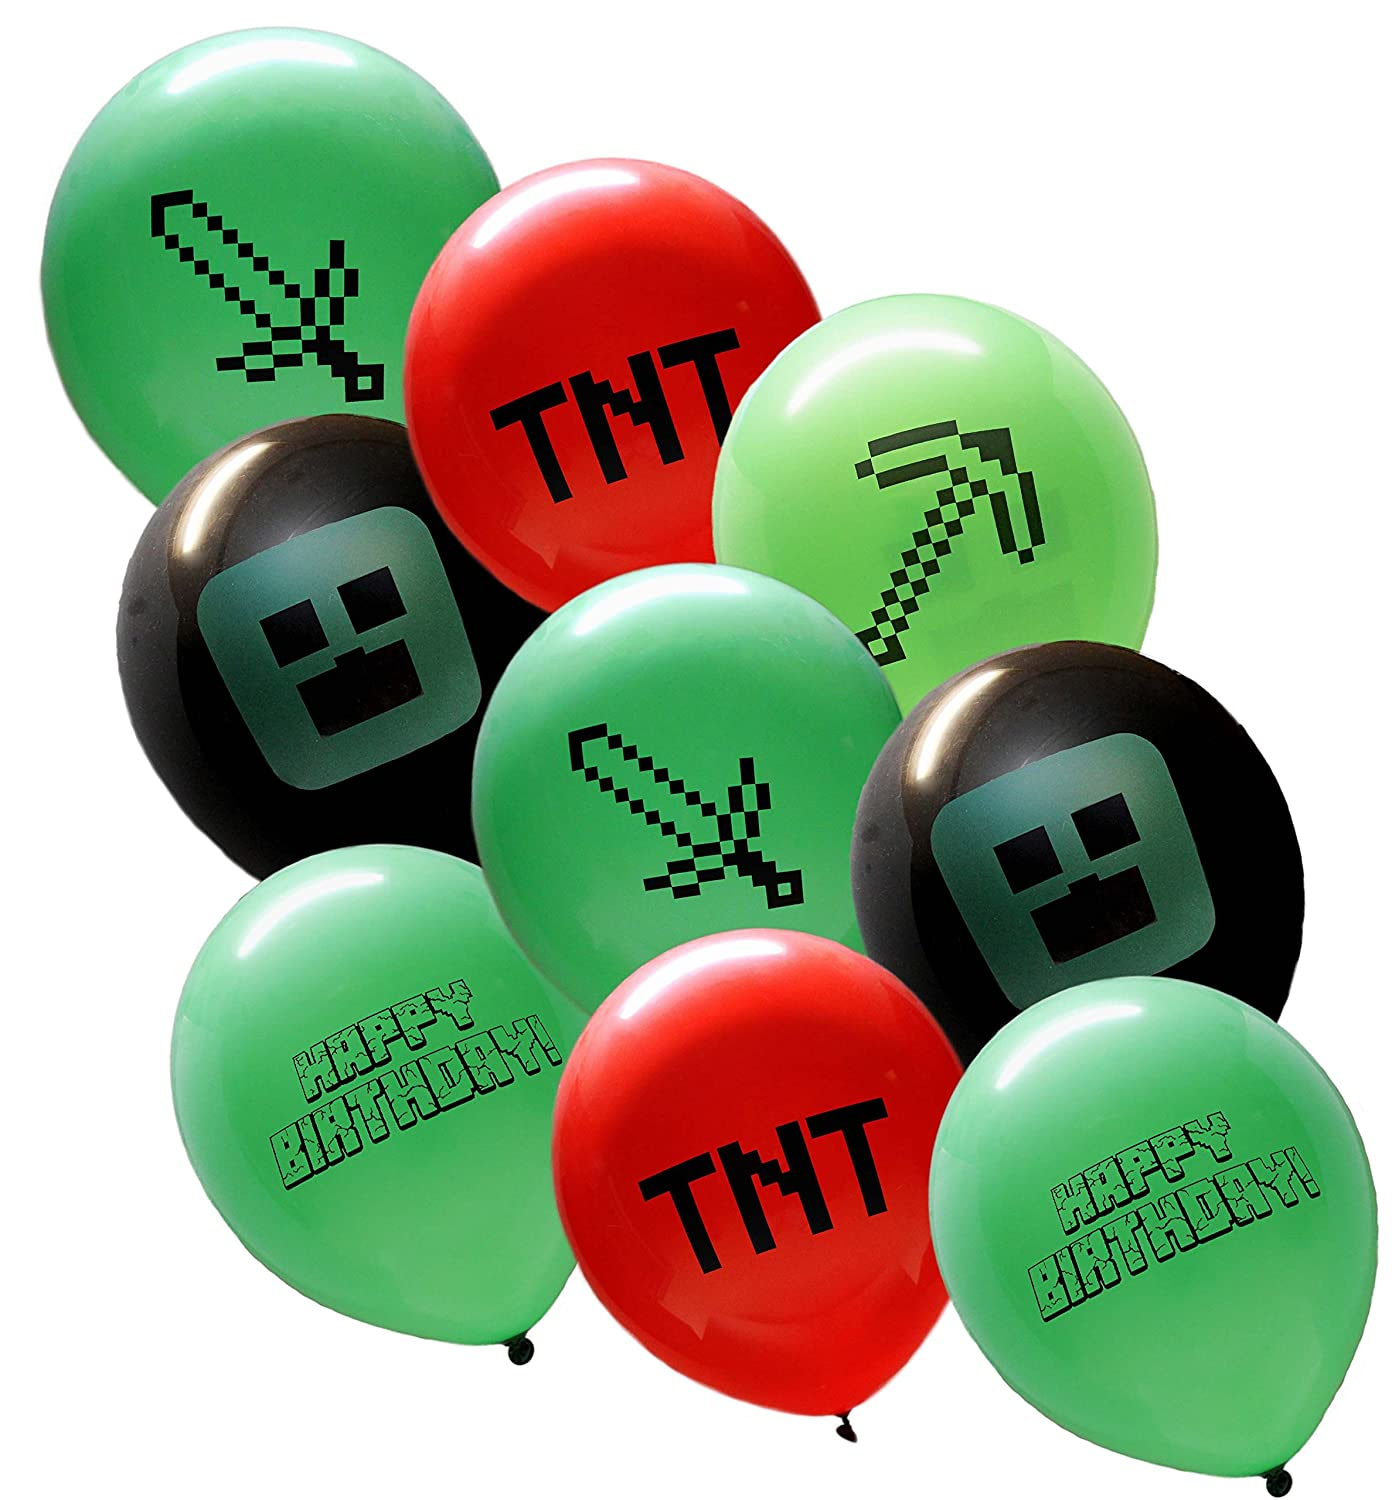 25 Pixel Style Miner Party Balloon Pack - Large 12 Latex Balloons Jade' s Enterprises